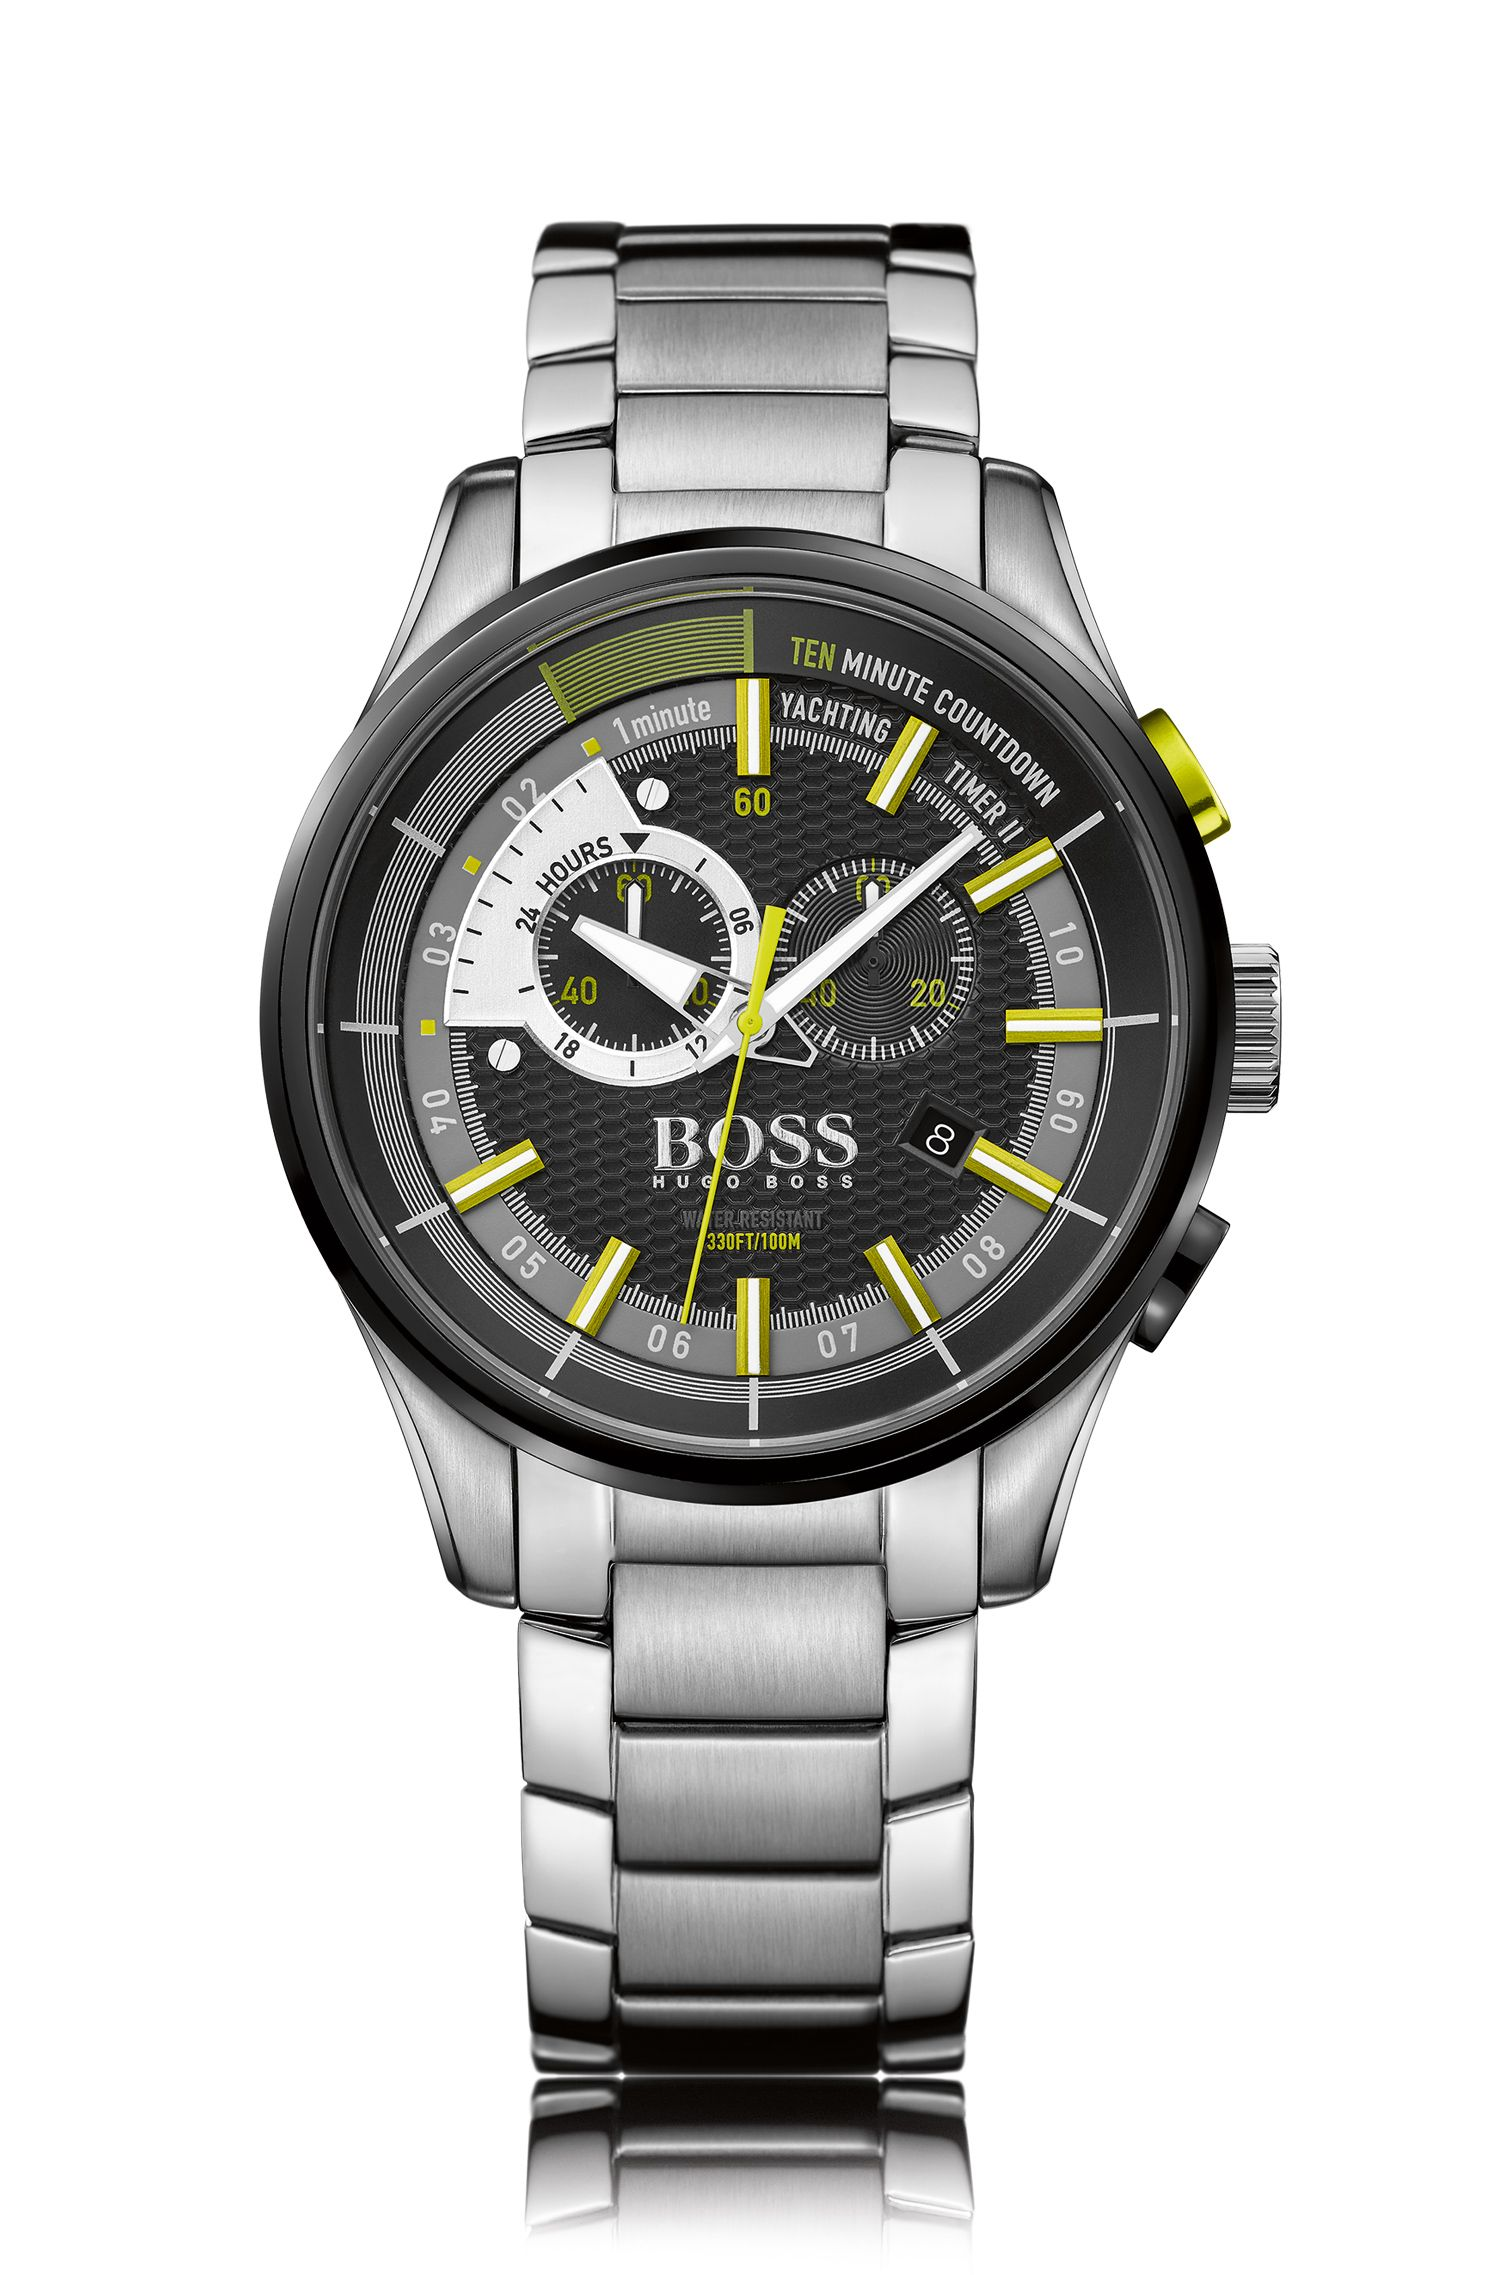 Hugo Boss Yachting Chronograph Stainless Steel Watch $299.97 @ Costco Canada Online